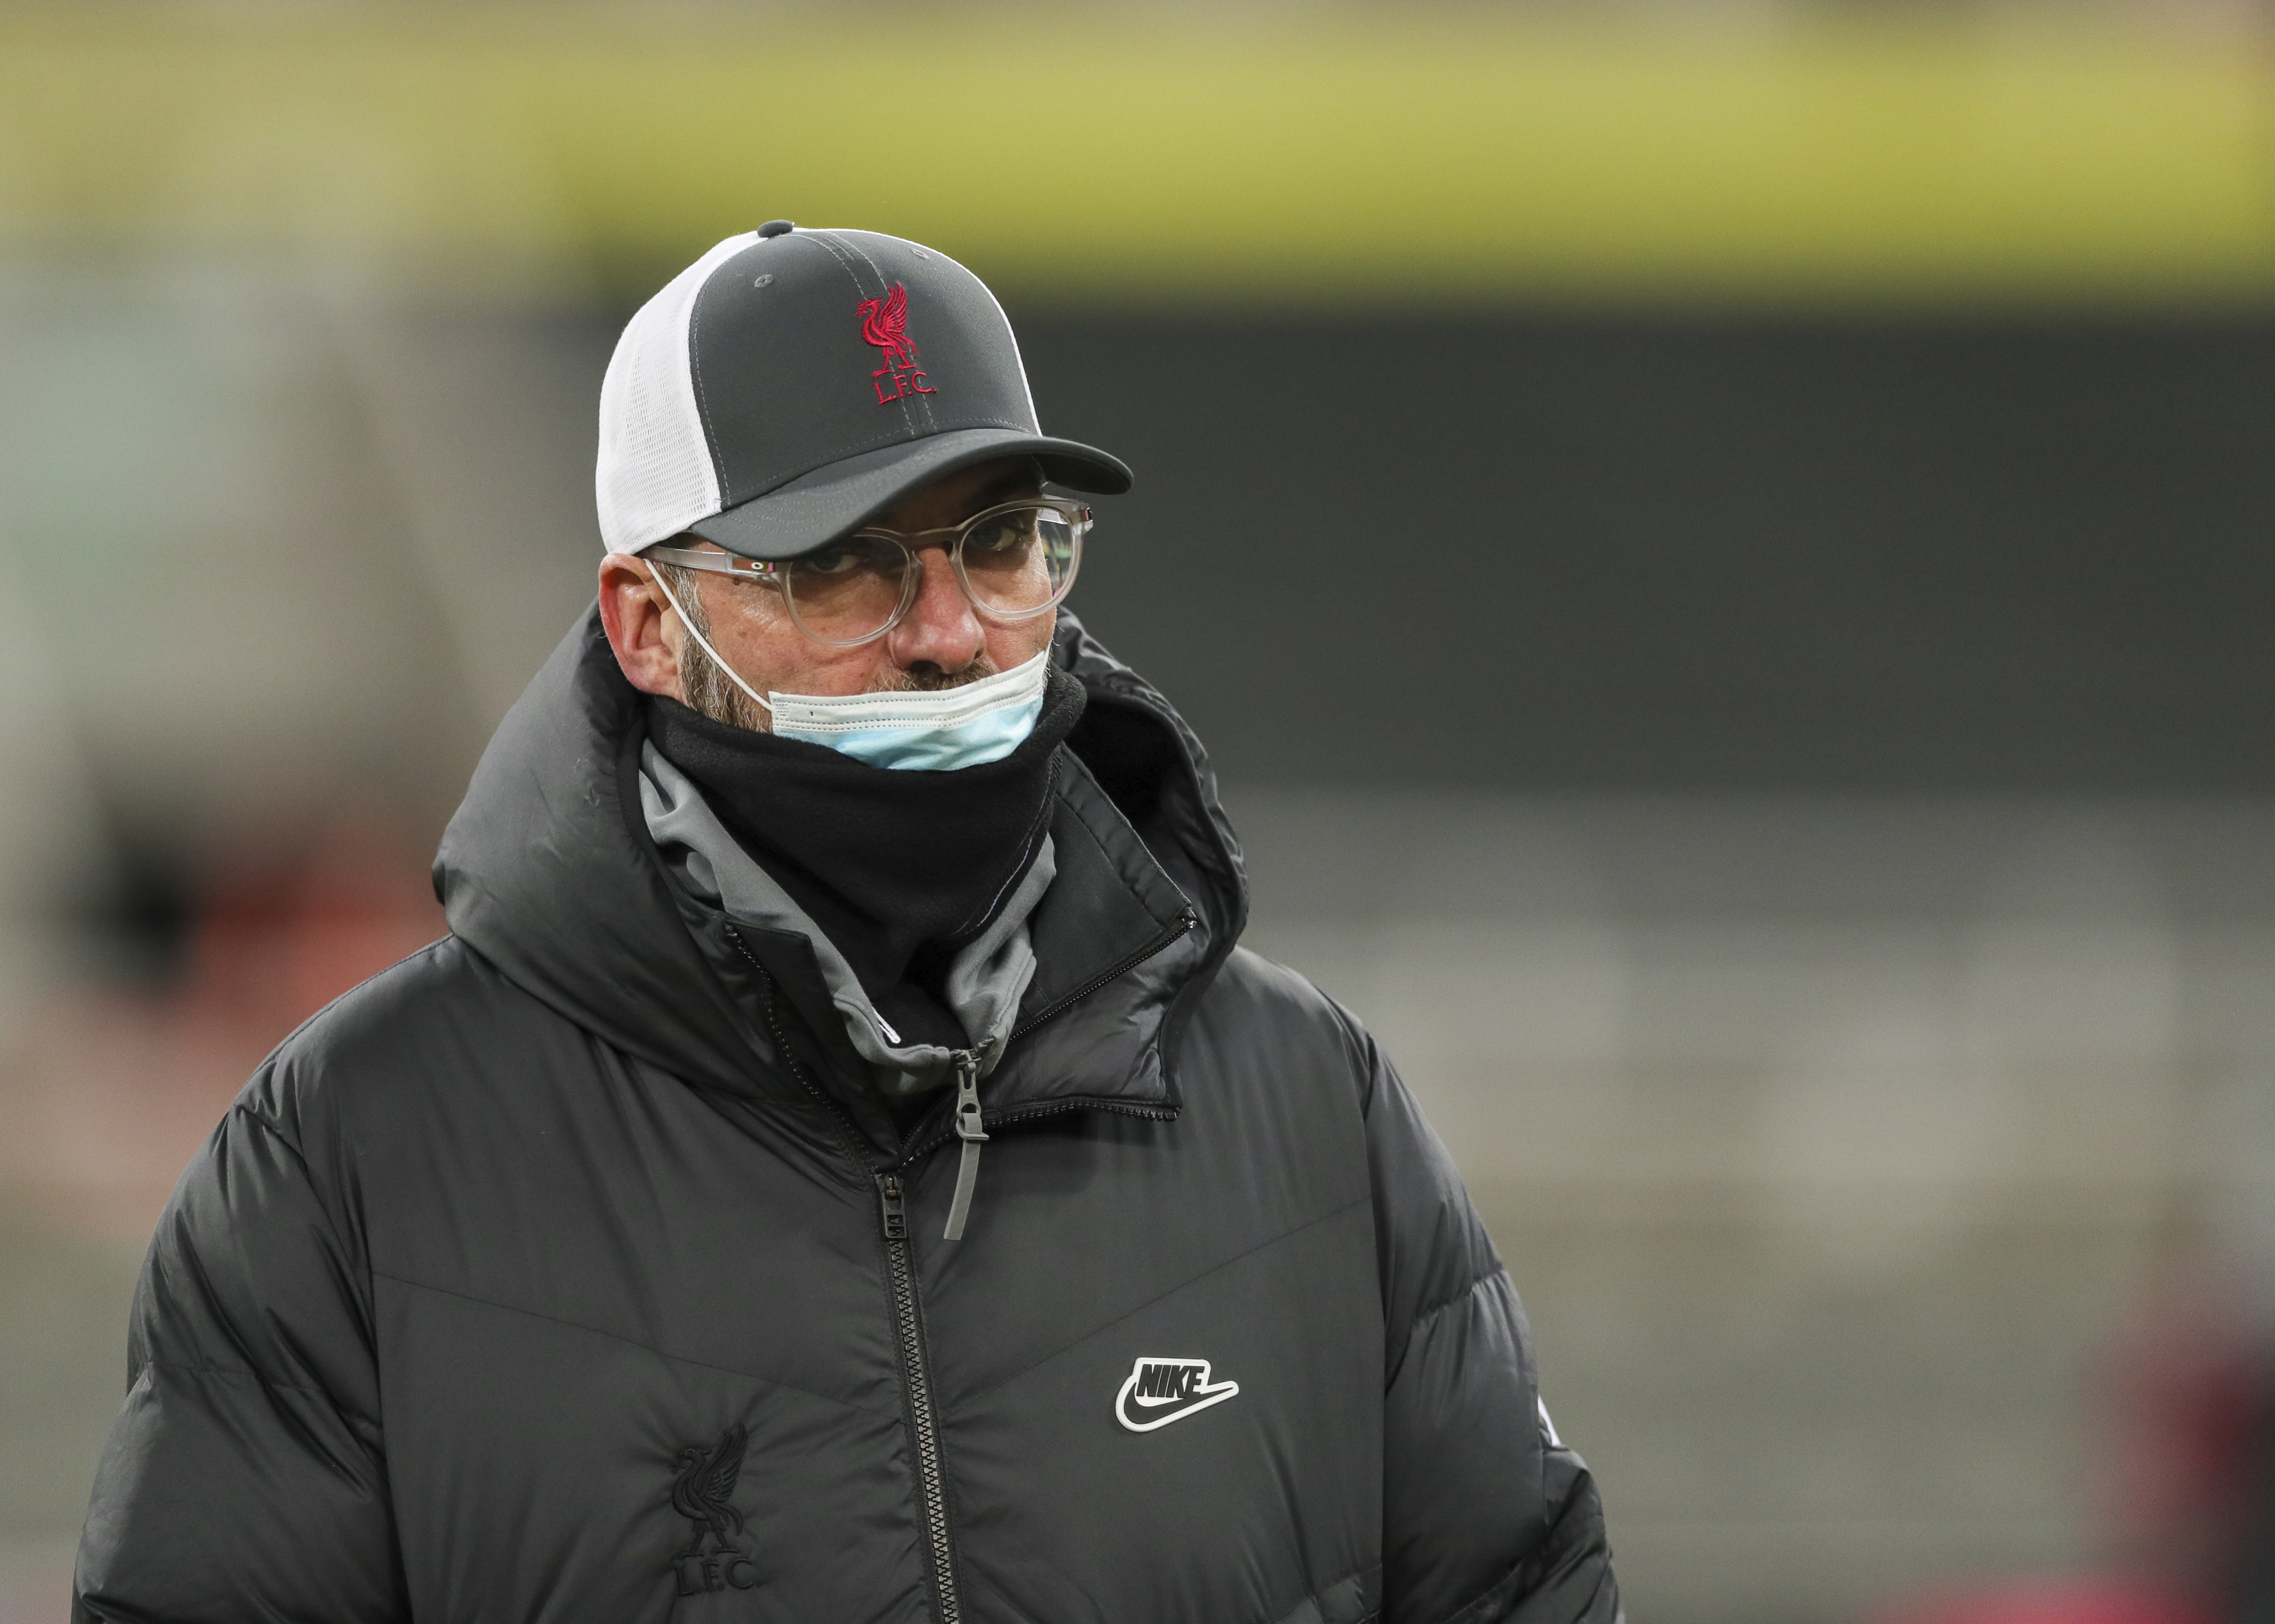 Jurgen Klopp wearing a surgical mask (not over his nose, though) and Liverpool baseball cap during the Premier League match between Newcastle United and Liverpool at St. James Park on December 30, 2020